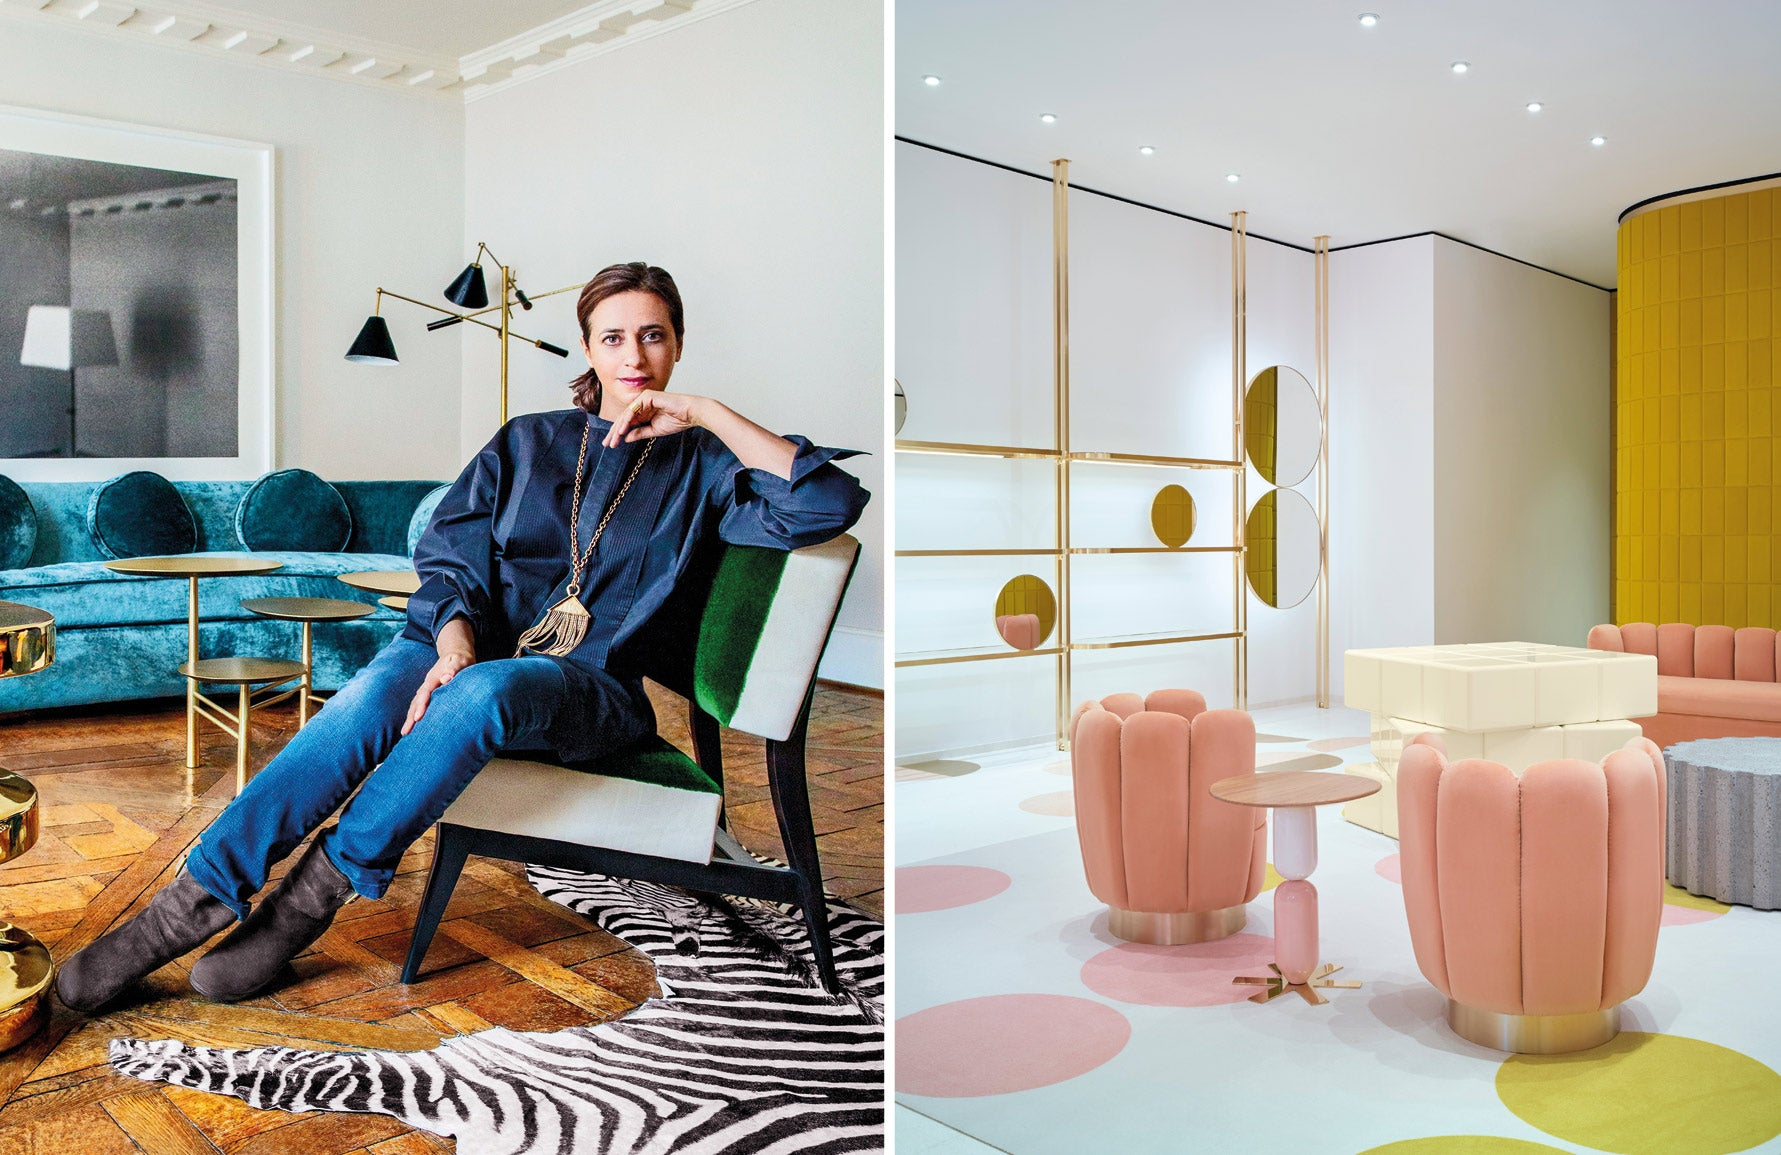 Female Interior Designers who Changed the Industry - India Mahdavi - LuxDeco Style Guide